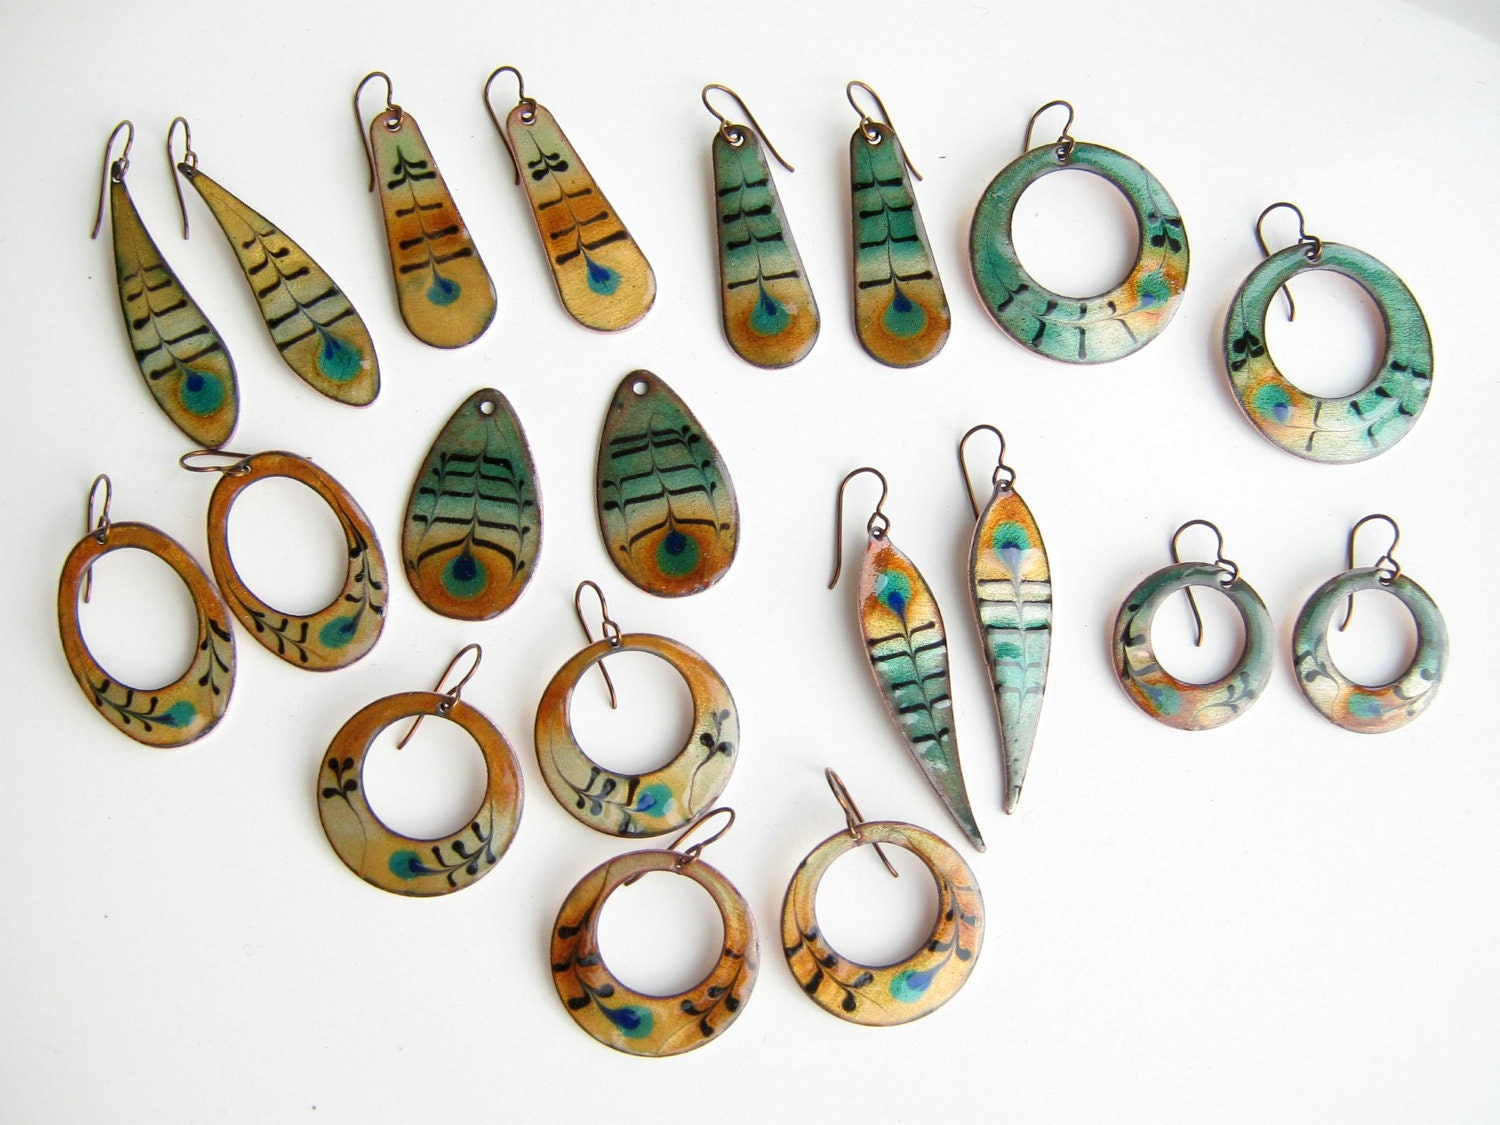 Peacock feather hoop earrings- copper enamel with niobium earring hooks